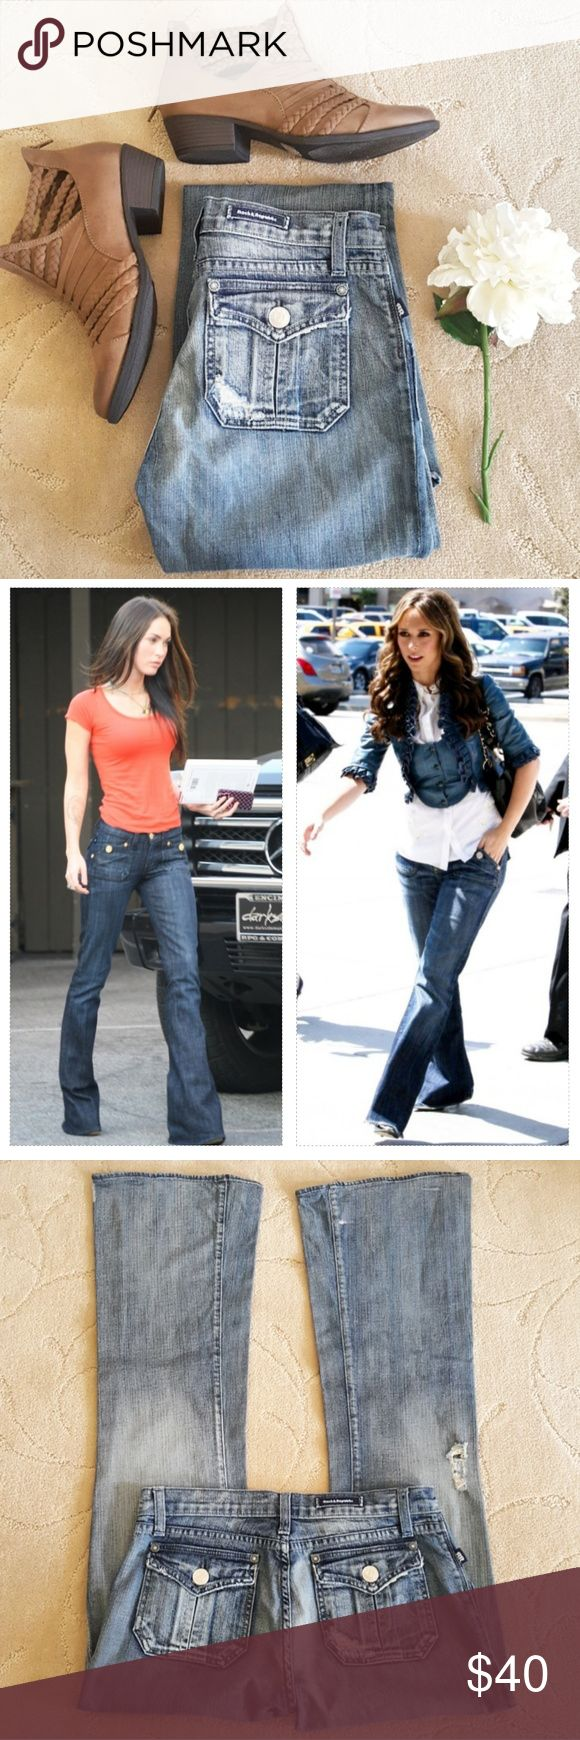 ROCK & REPUBLIC | Scorpion Jeans Perfectly distressed jeans ready to exude boho vibes!  * Style: Scorpion * Distressed by design * Minor wear on hems and has pink mark on right bottom side  * Shown on Megan Fox and Jennifer Love-Hewitt in darker wash   W 30"